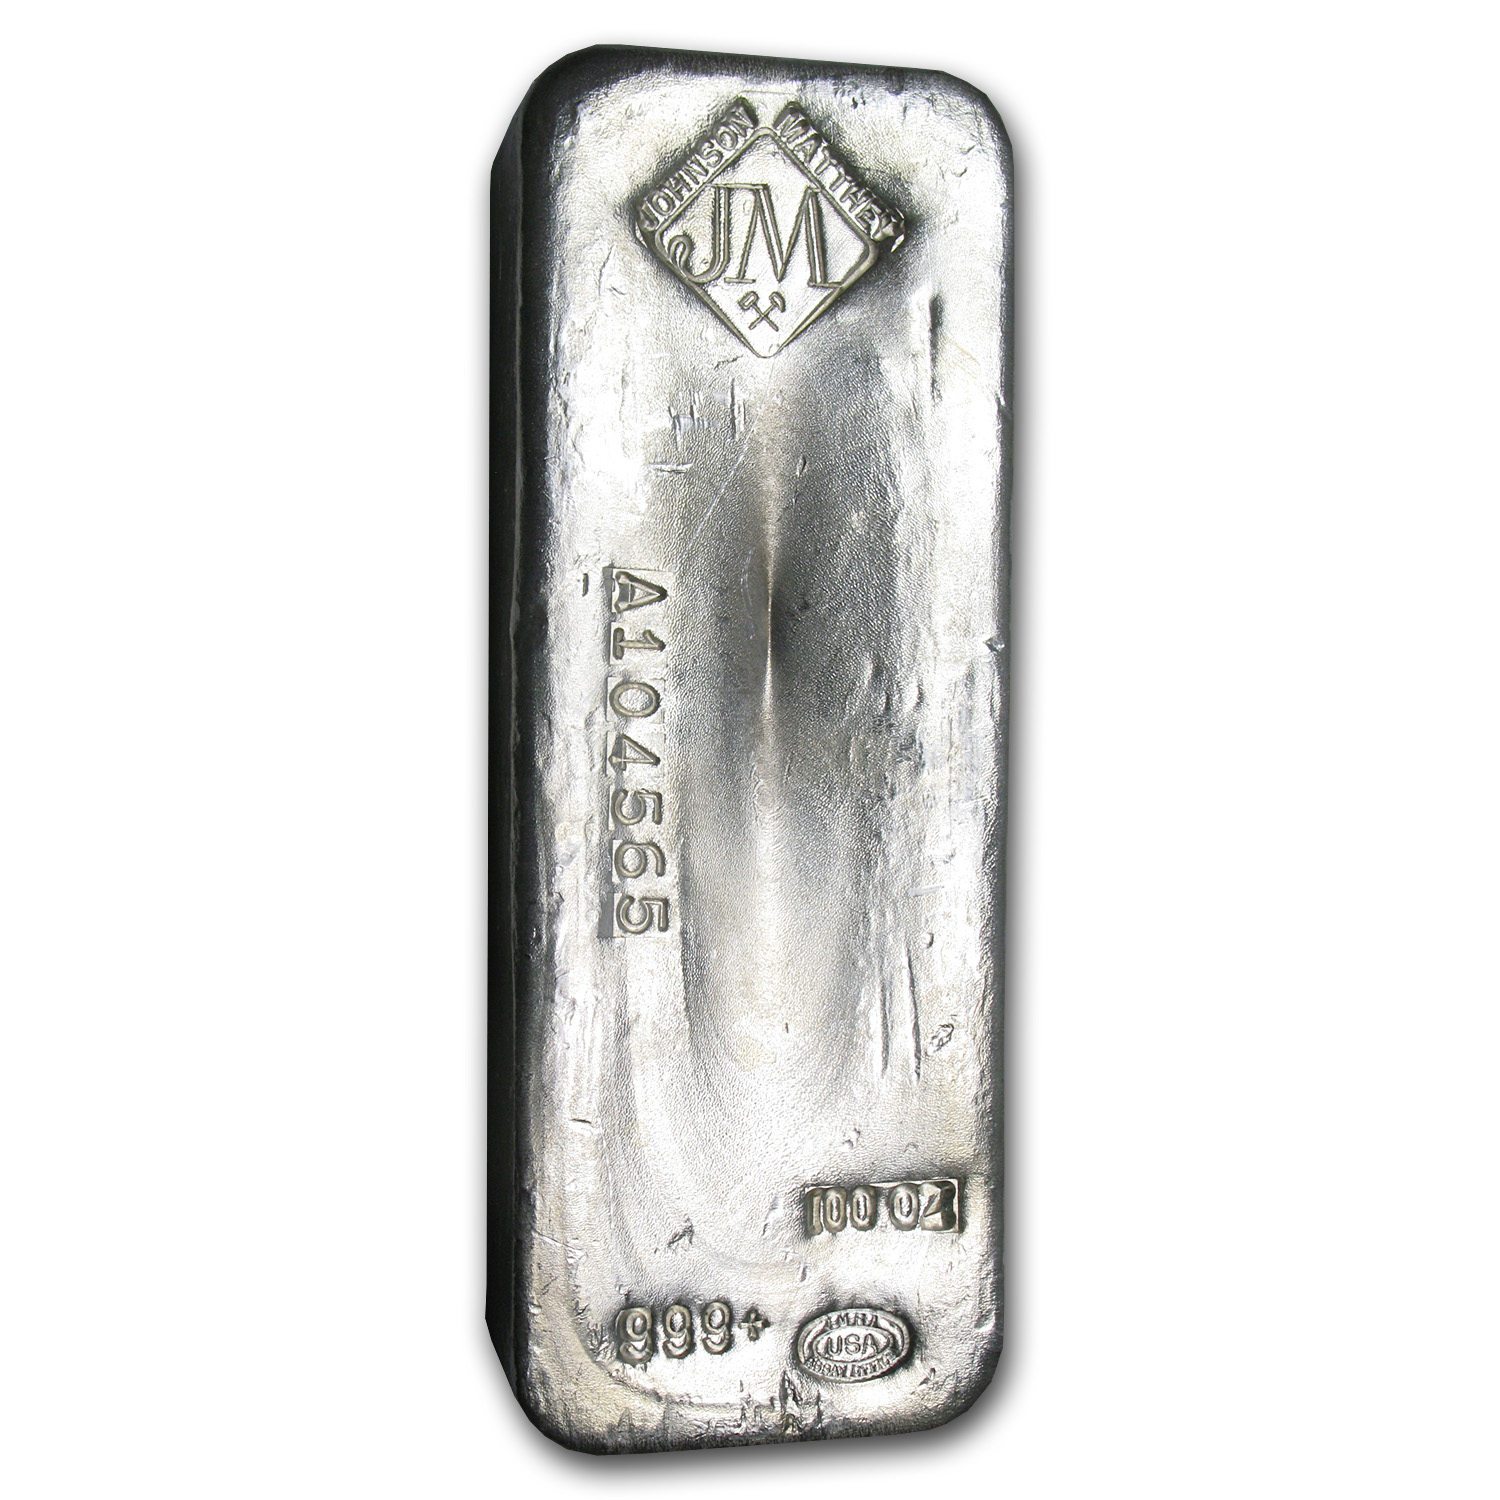 100 oz Silver Bar - Johnson Matthey (Serial #/USA)